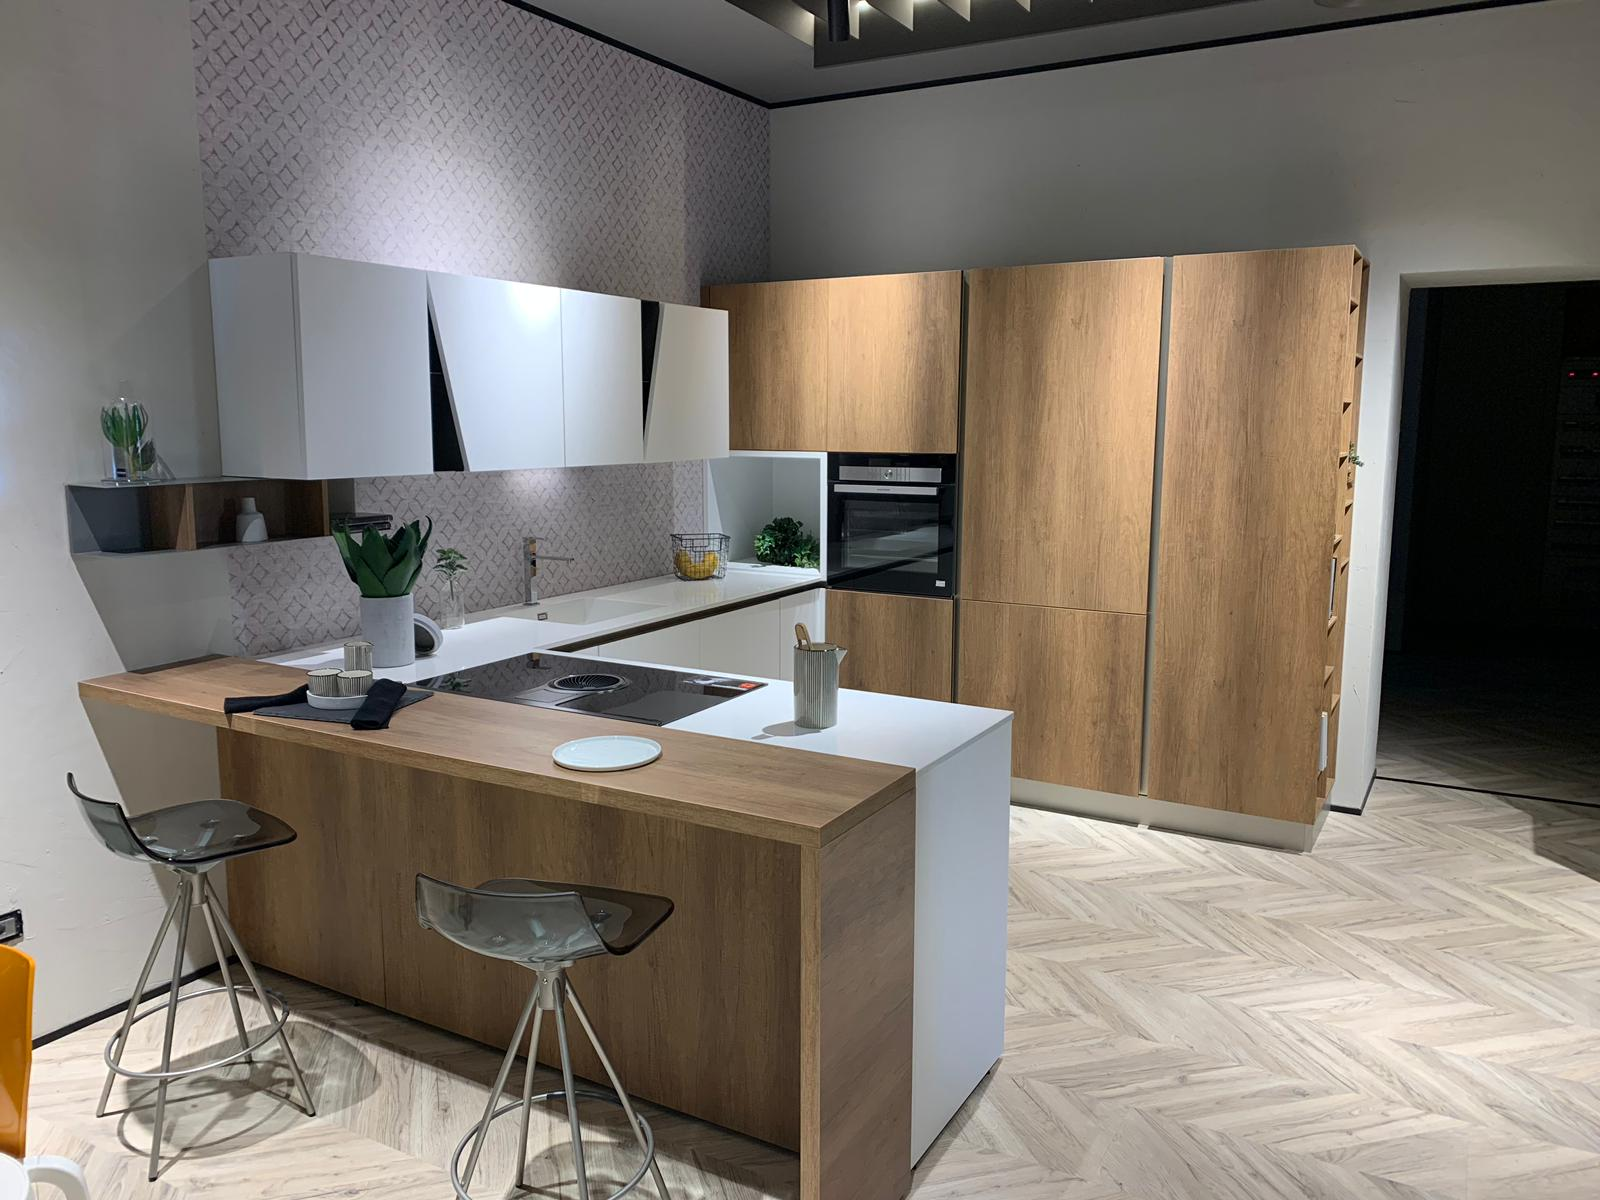 cucina_in_legno_stosa_point